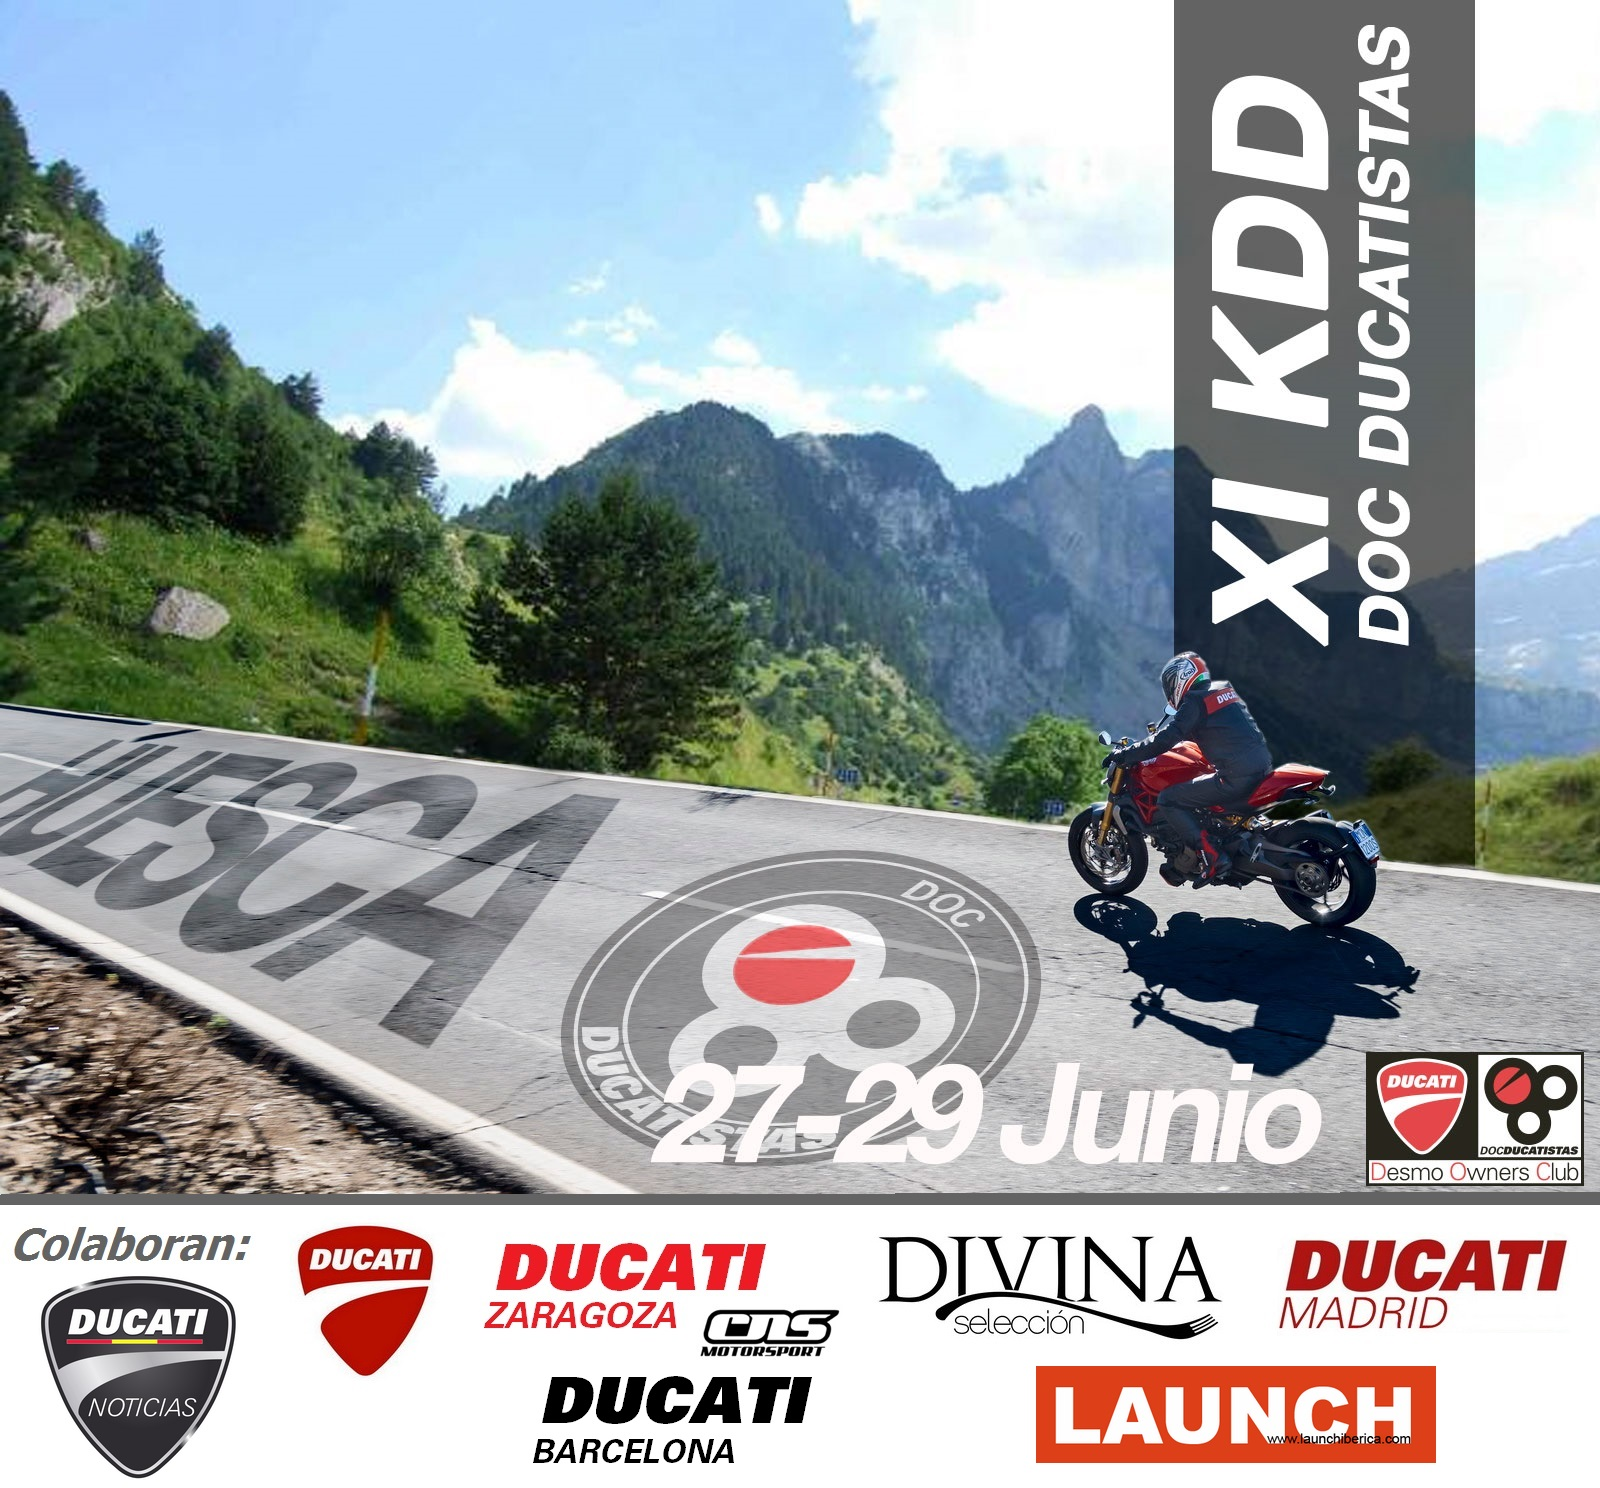 concentracion-club-ducati-ducatistas